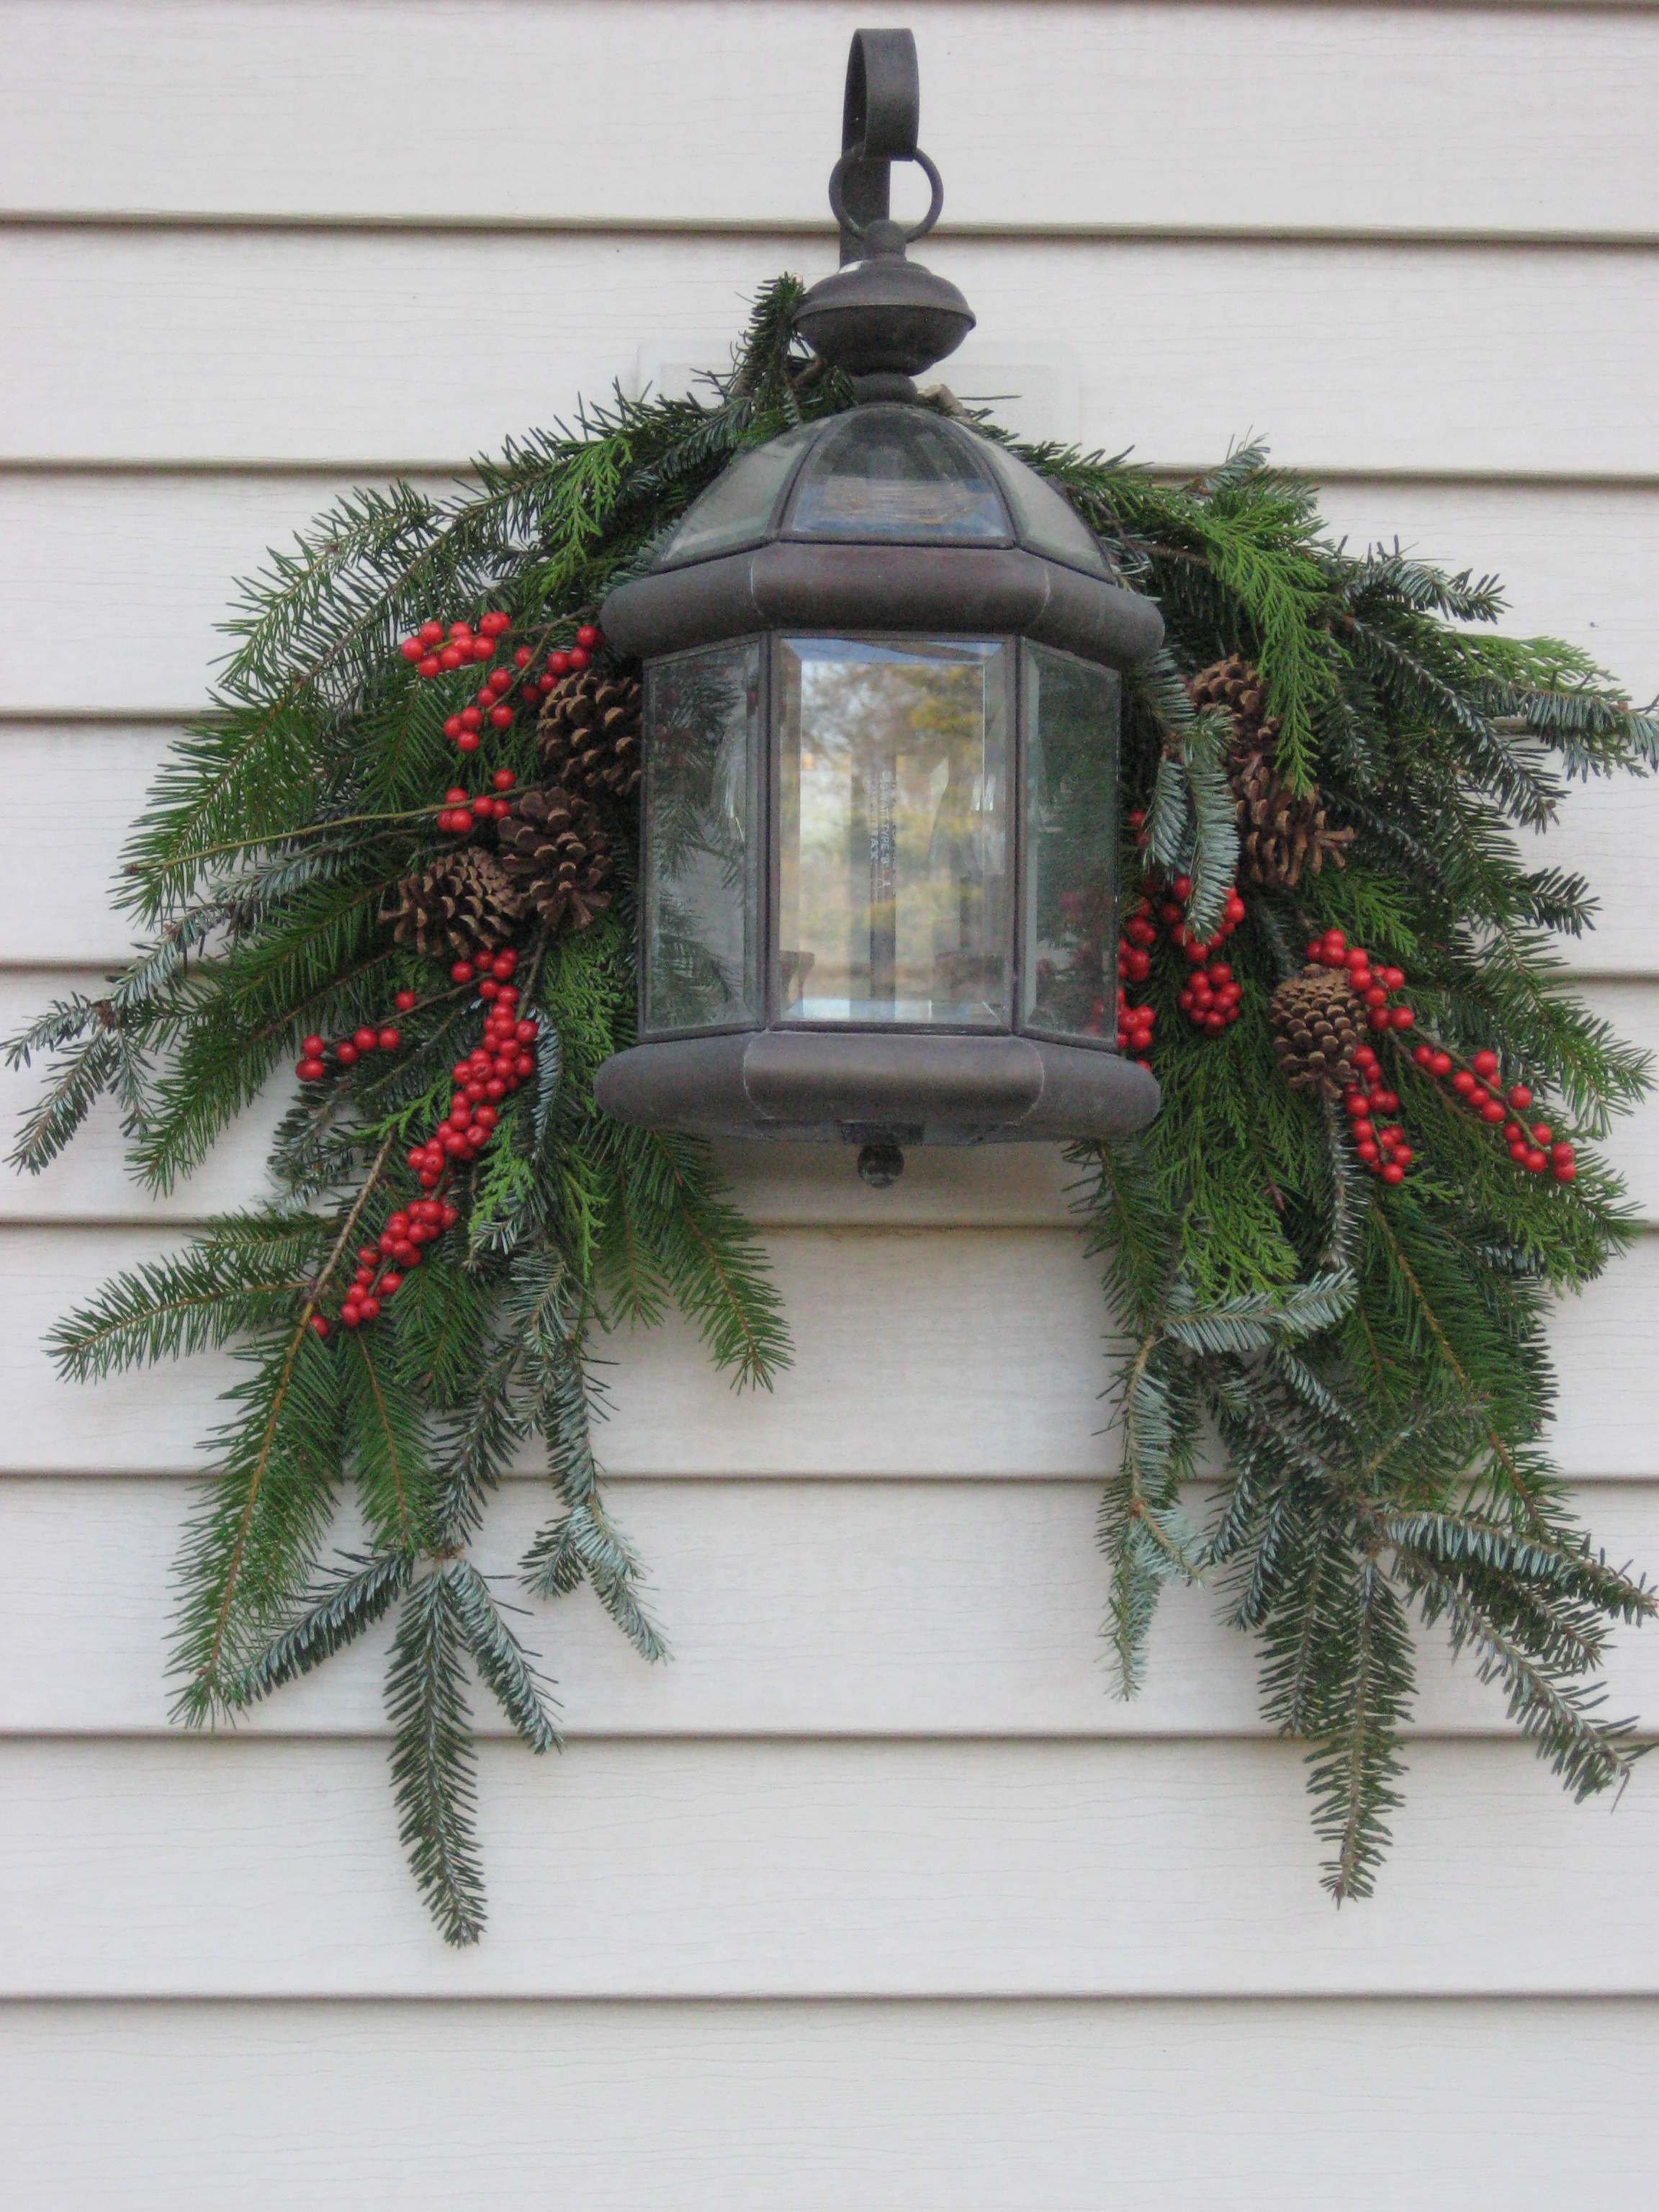 install indooroutdoor lighting photo of swag and lantern - Christmas Porch Light Decorations